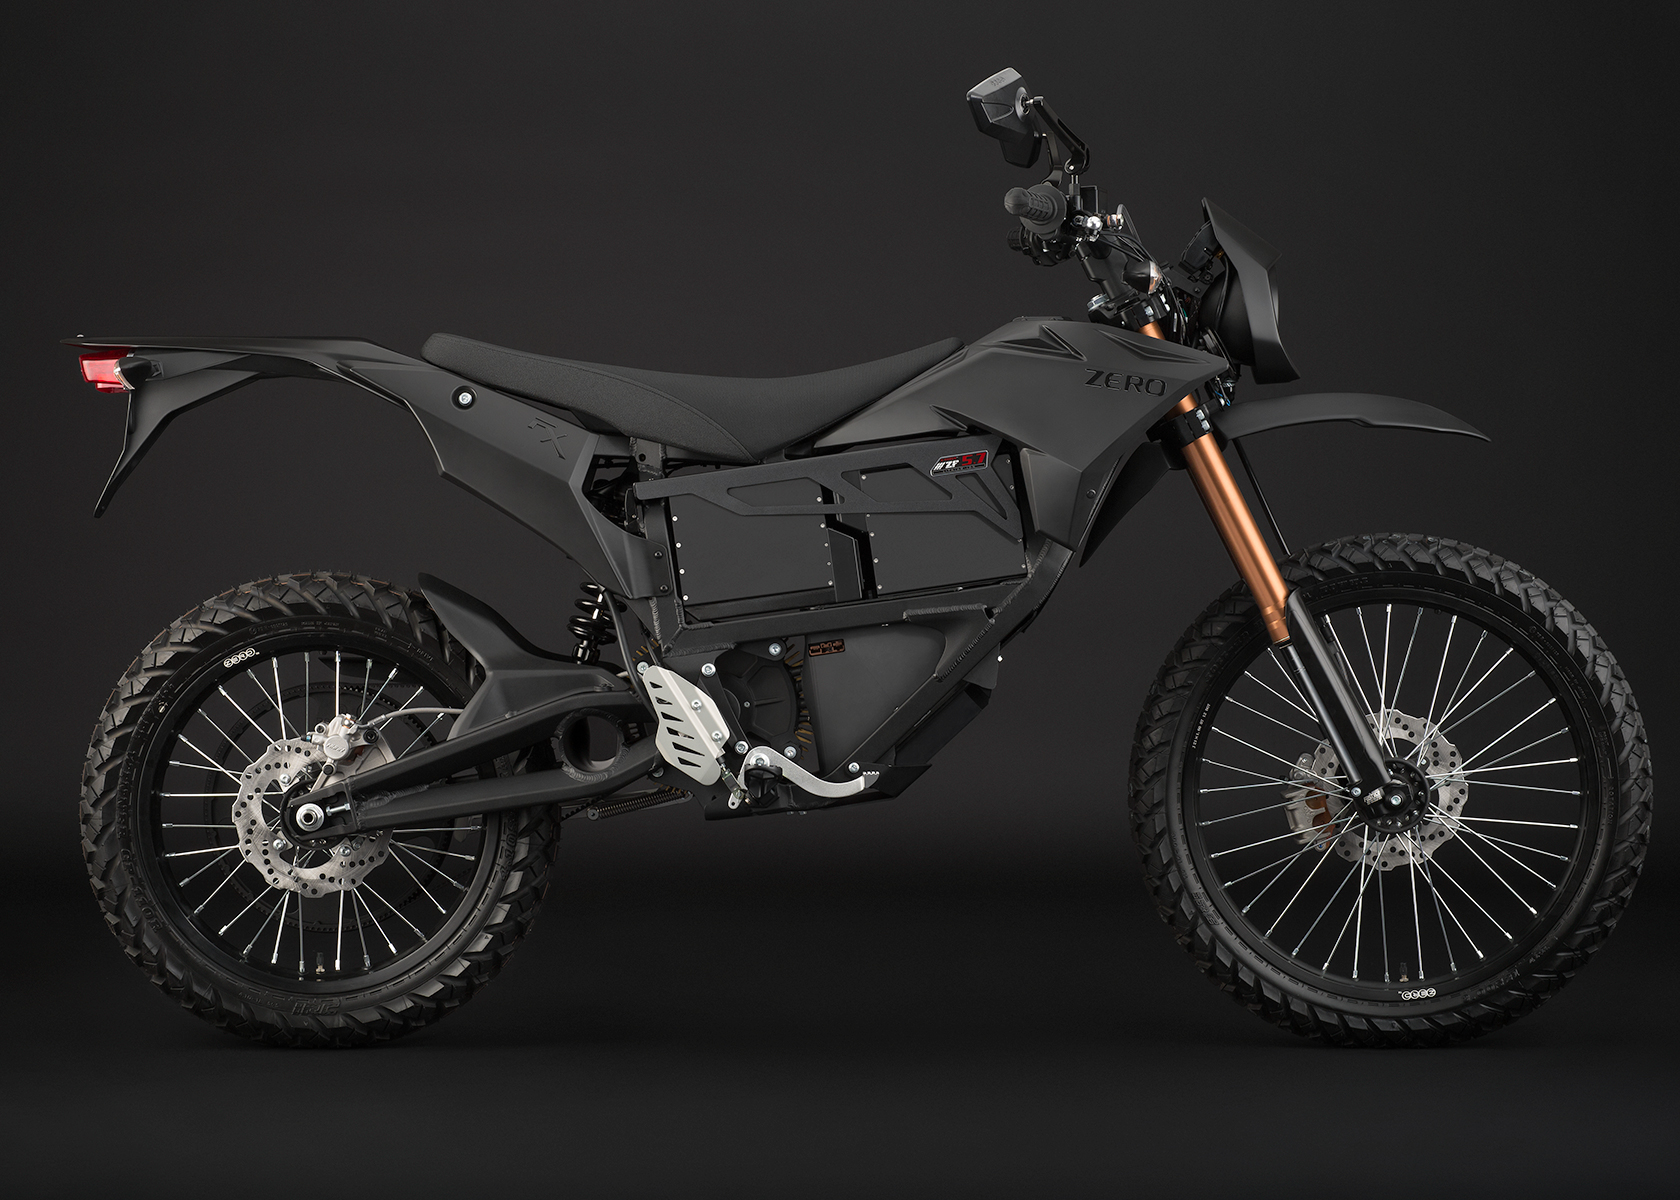 2013 Zero FX Electric Motorcycle: Black Profile Right